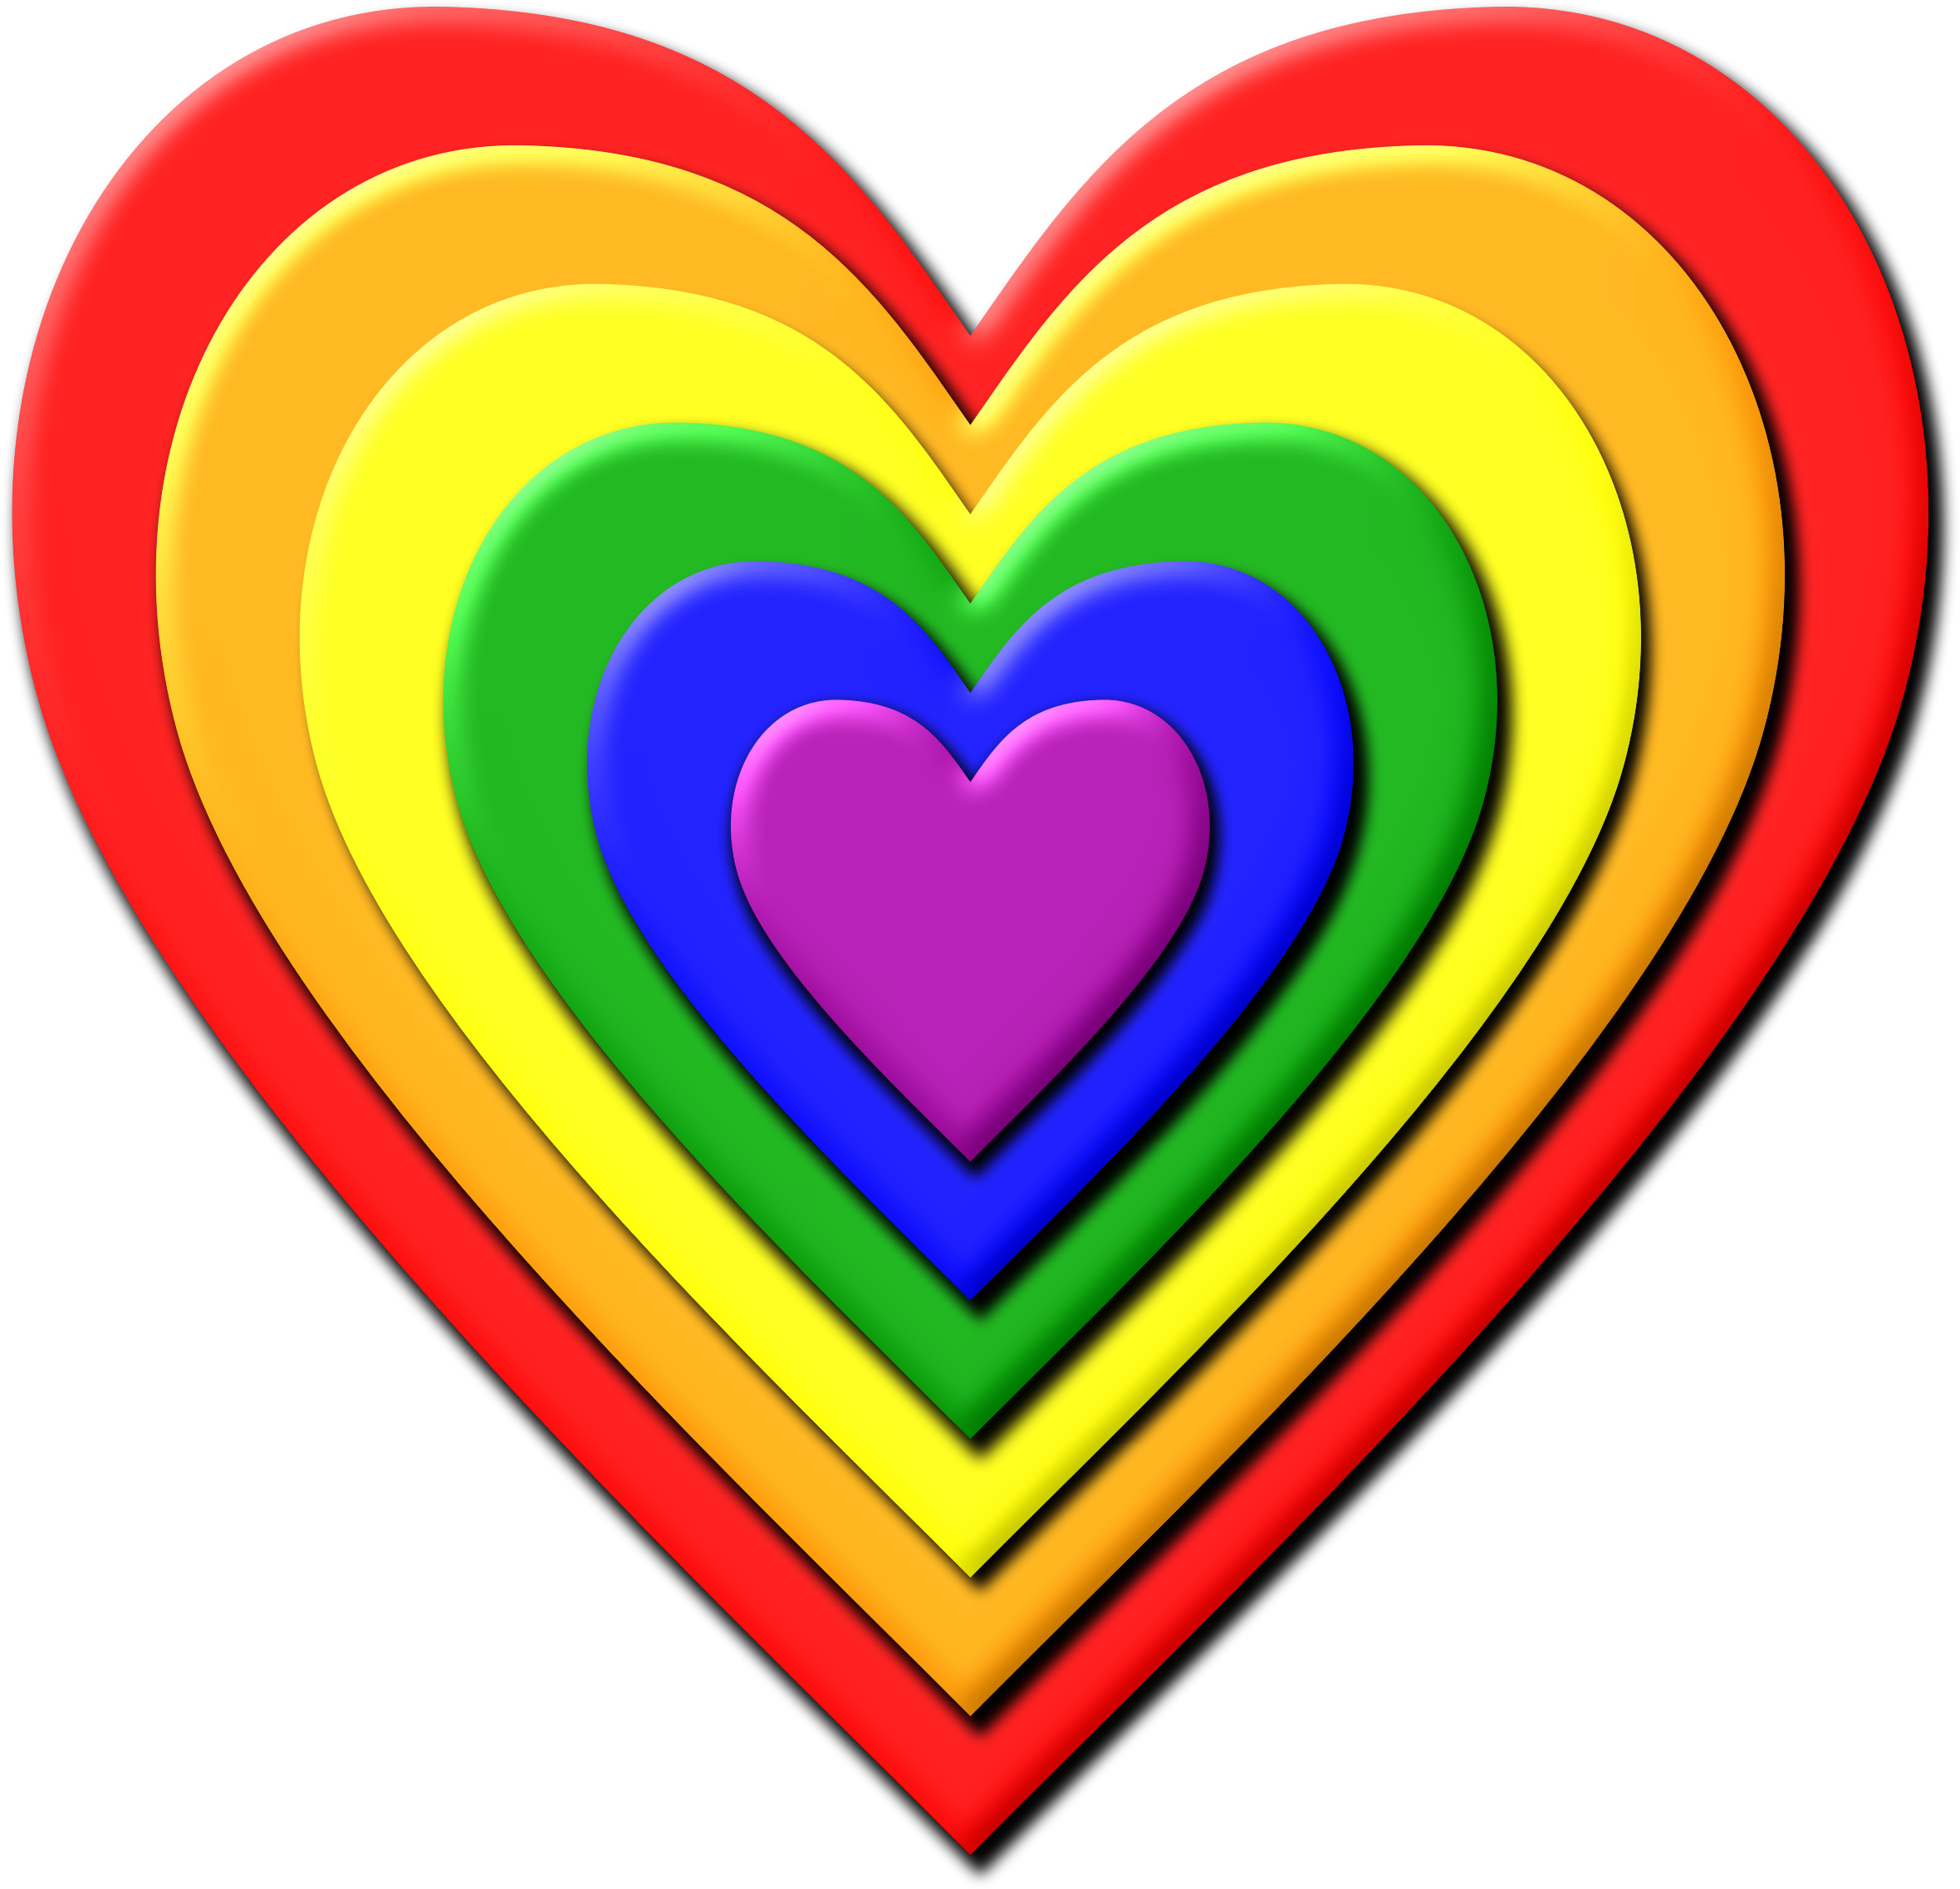 Rainbow heart 2 by Firkin